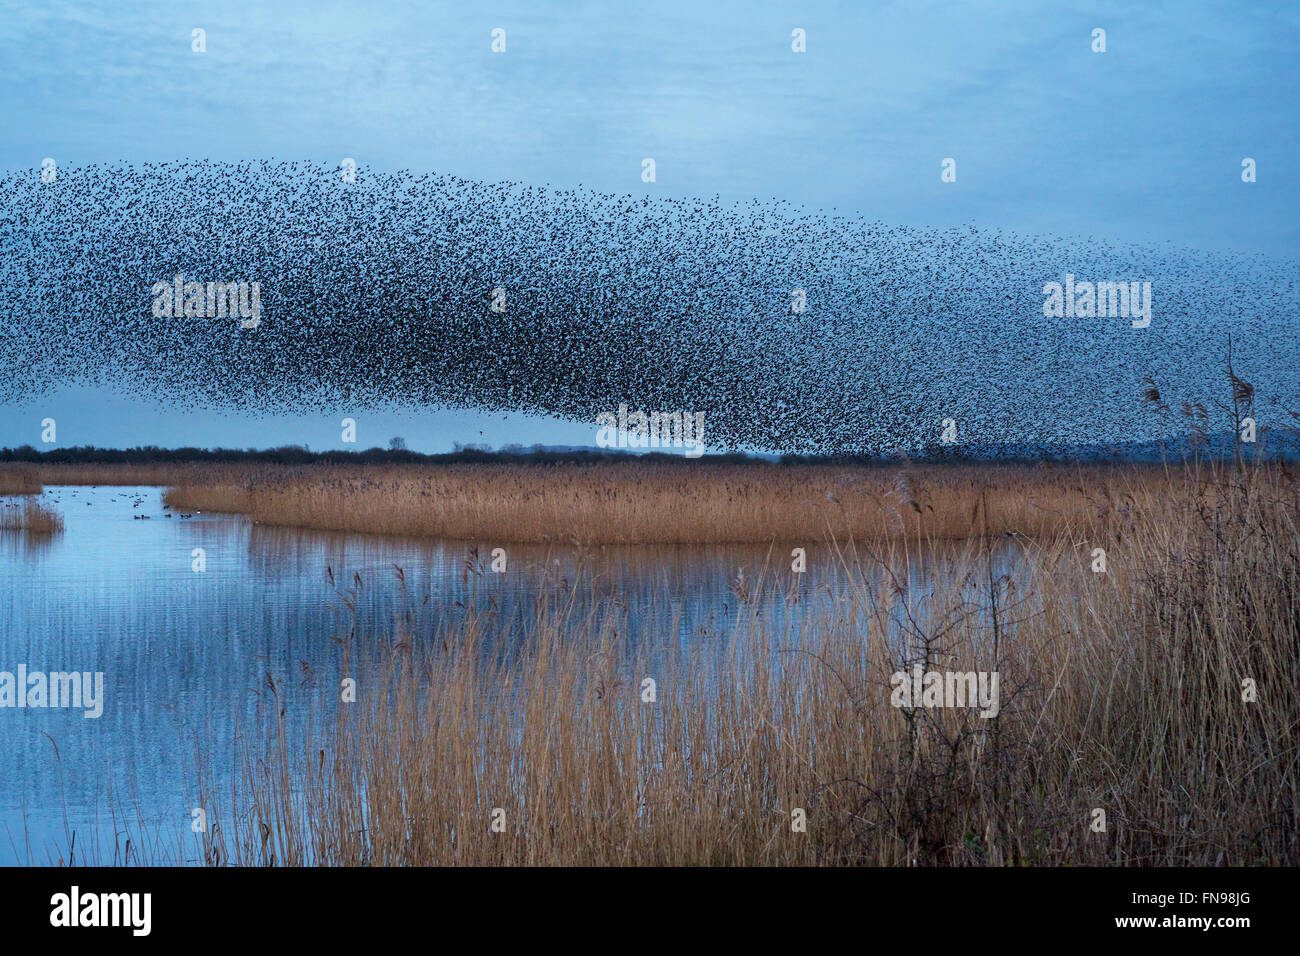 A murmuration of starlings, a spectacular aerobatic display of a large number of birds in flight at dusk over the - Stock Image